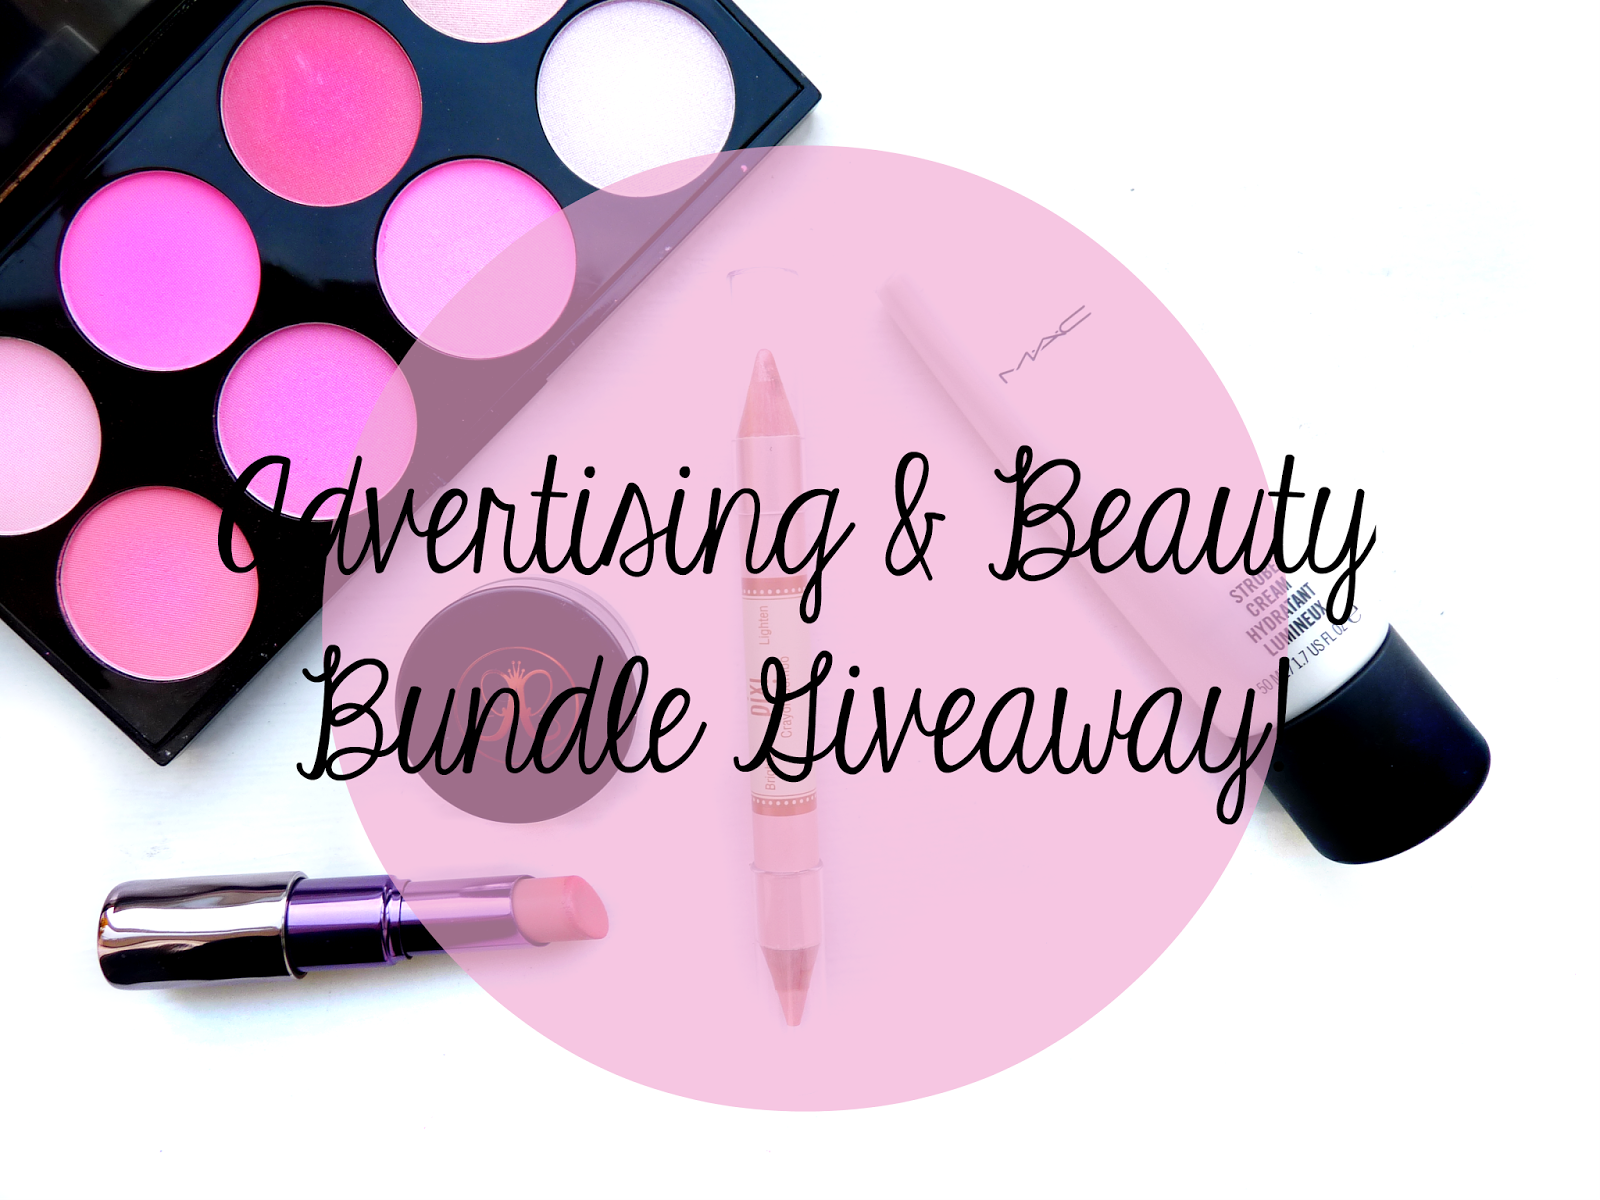 beauty, lifestyle, giveaway, bloggers, MAC, advertising, promotion, Makeup Revolution, Collection, youwishyou, freebies, Persiaca, 2015, win, prize, competitions